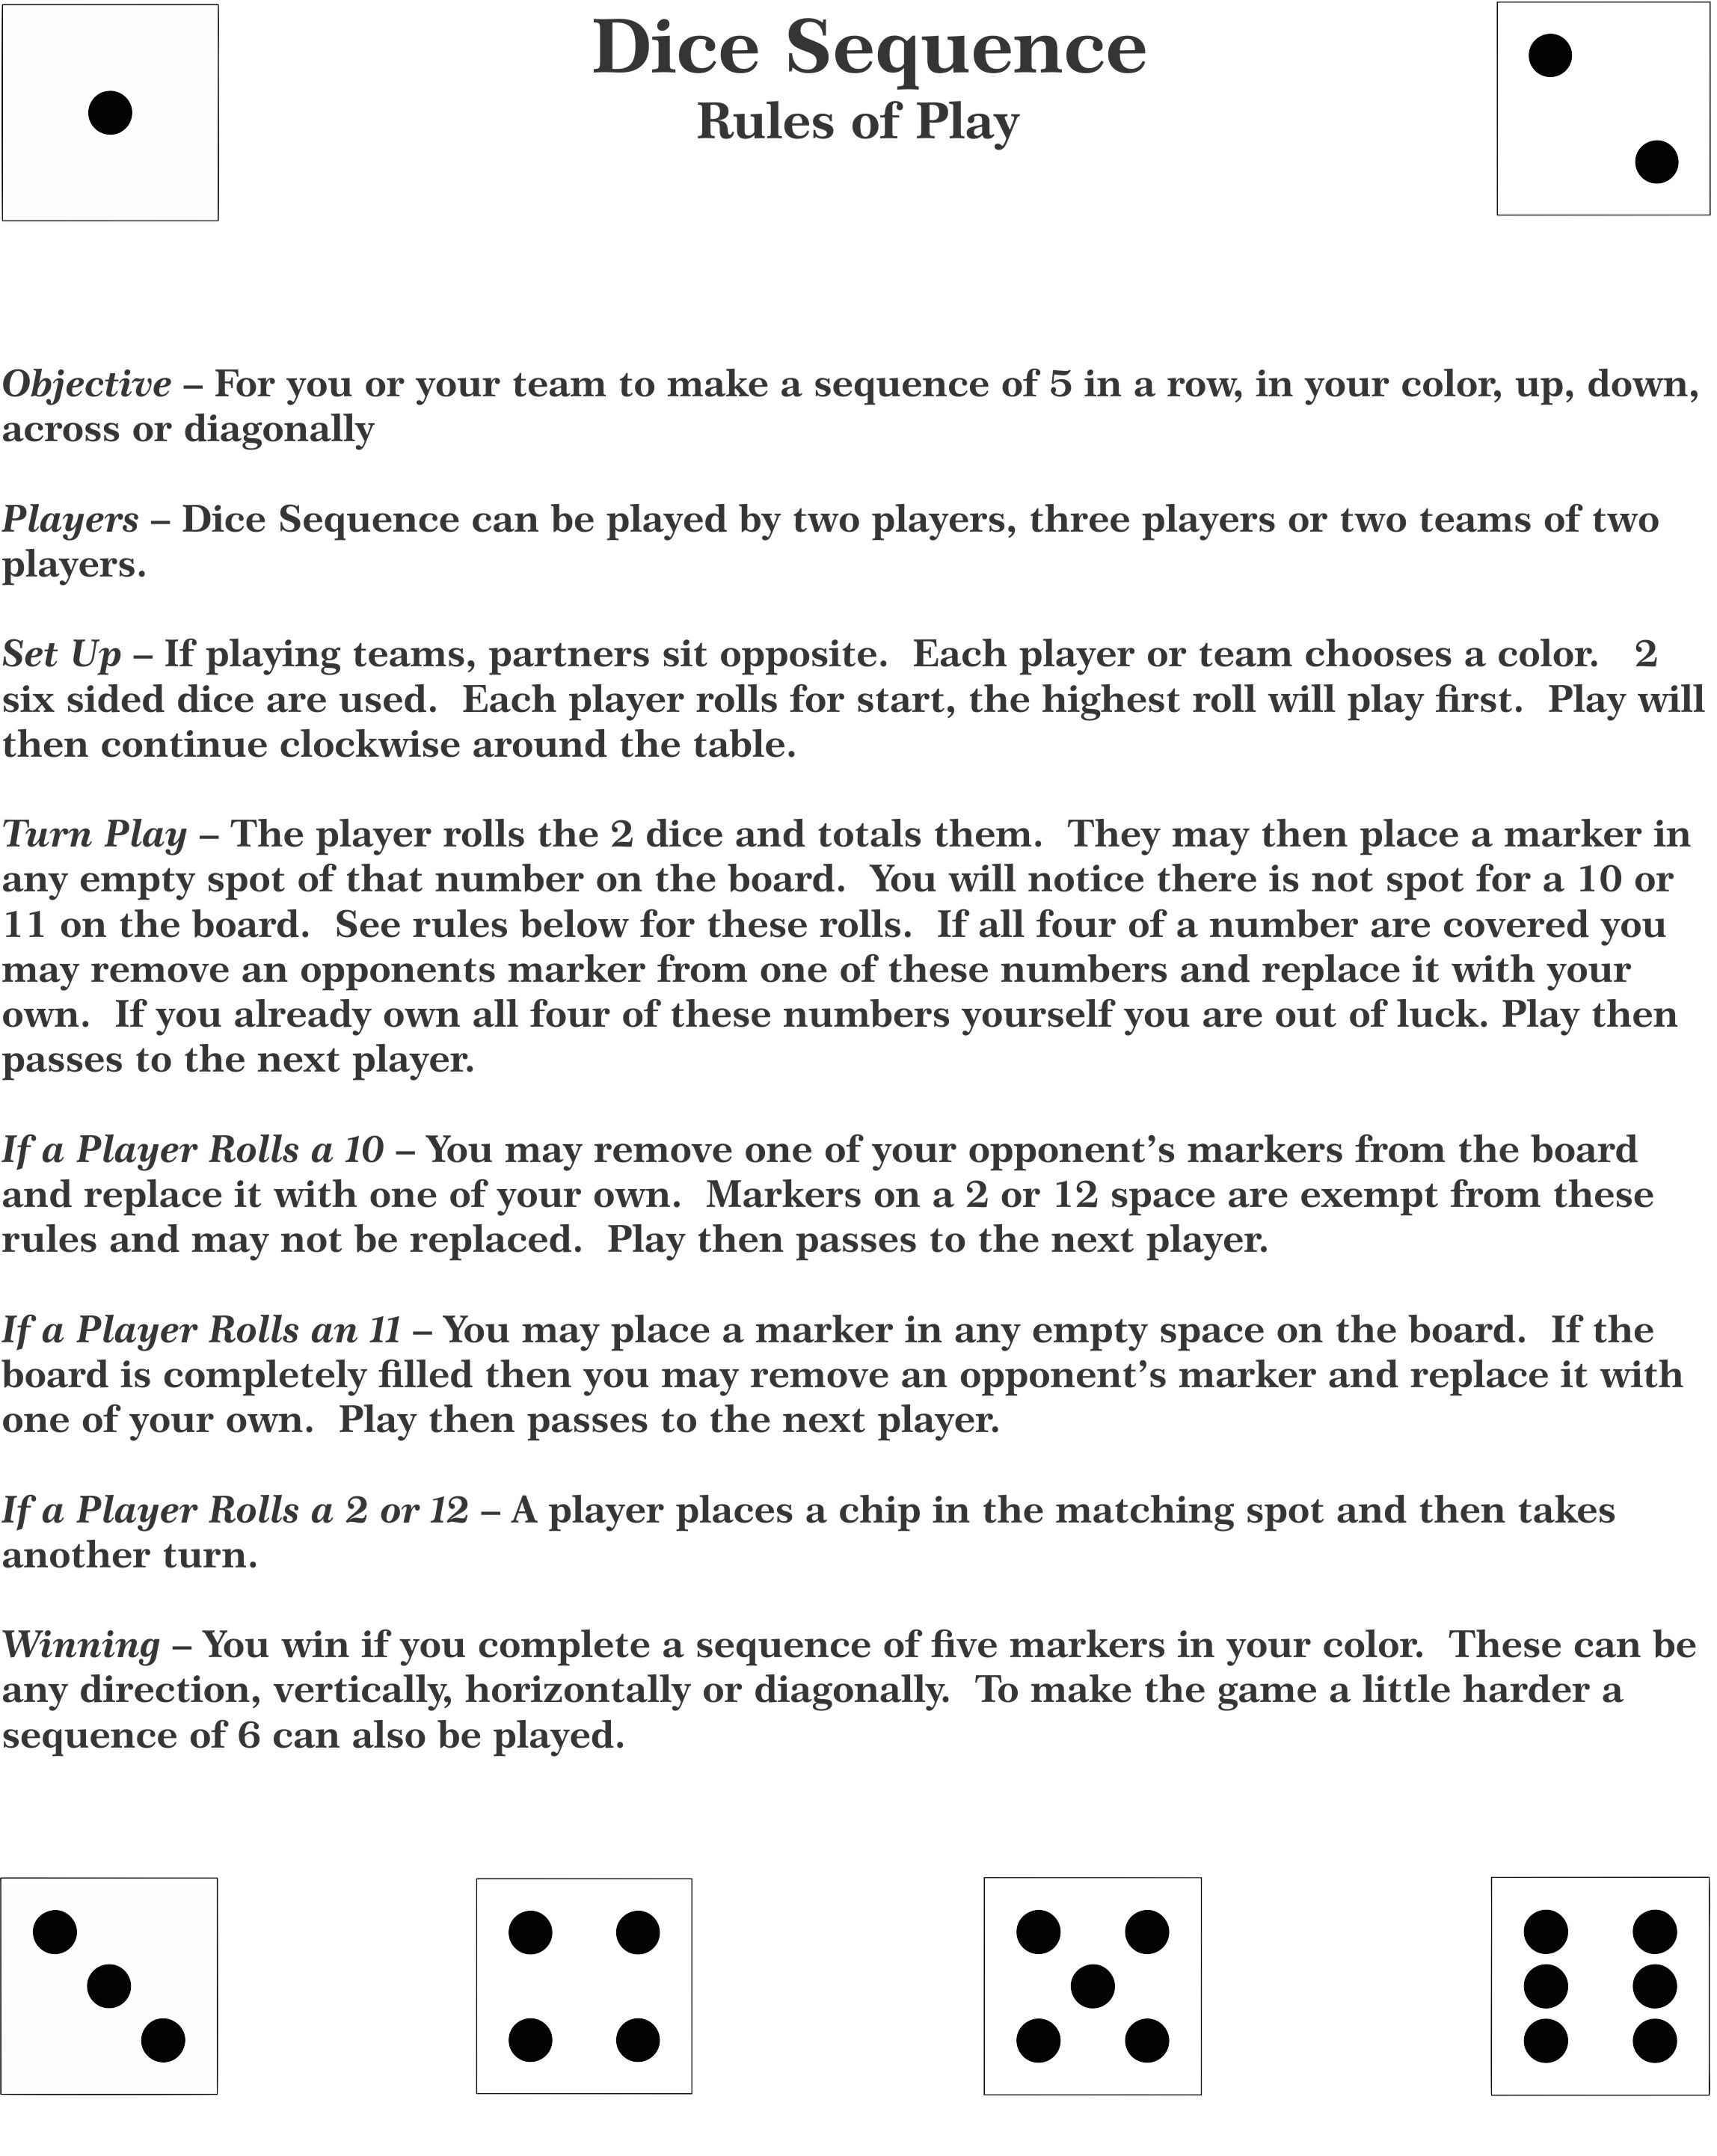 dice-sequence-rules.jpg